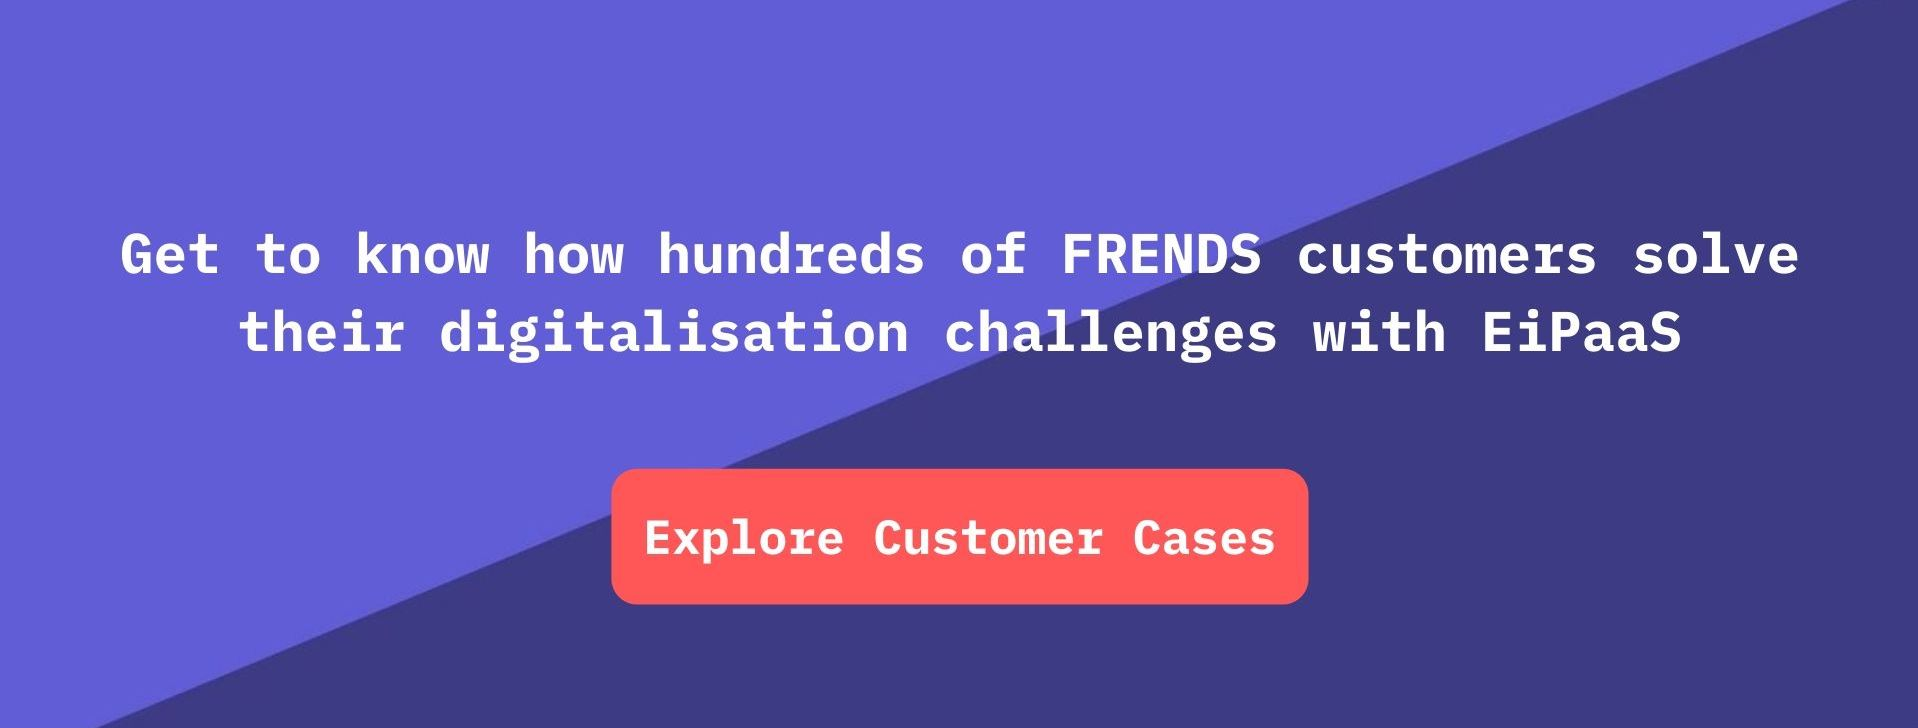 Explore Customer Cases